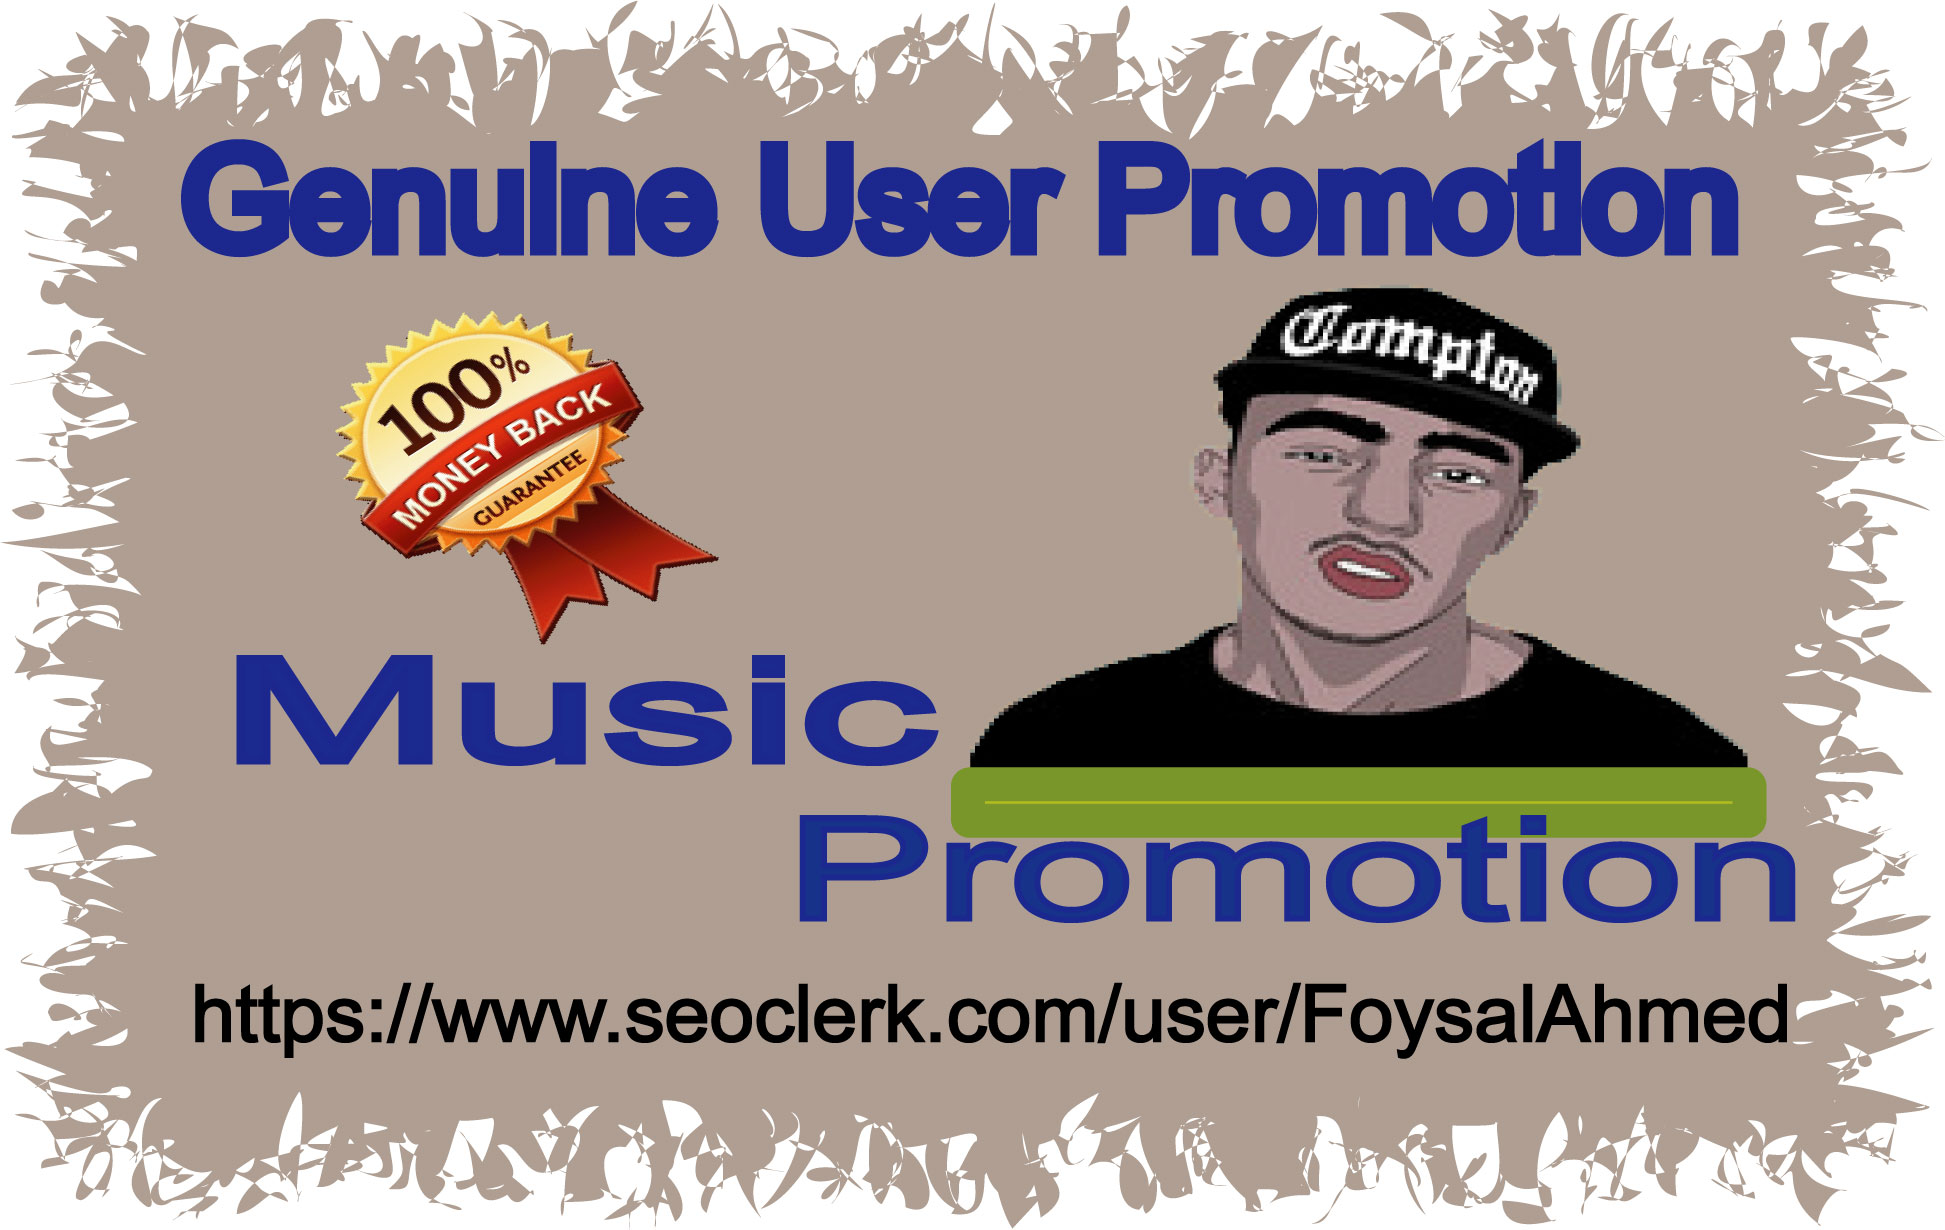 Music Promotion 105K Music Play & 350 Llke & 200 Re-post & 25 C0mments For Your Song